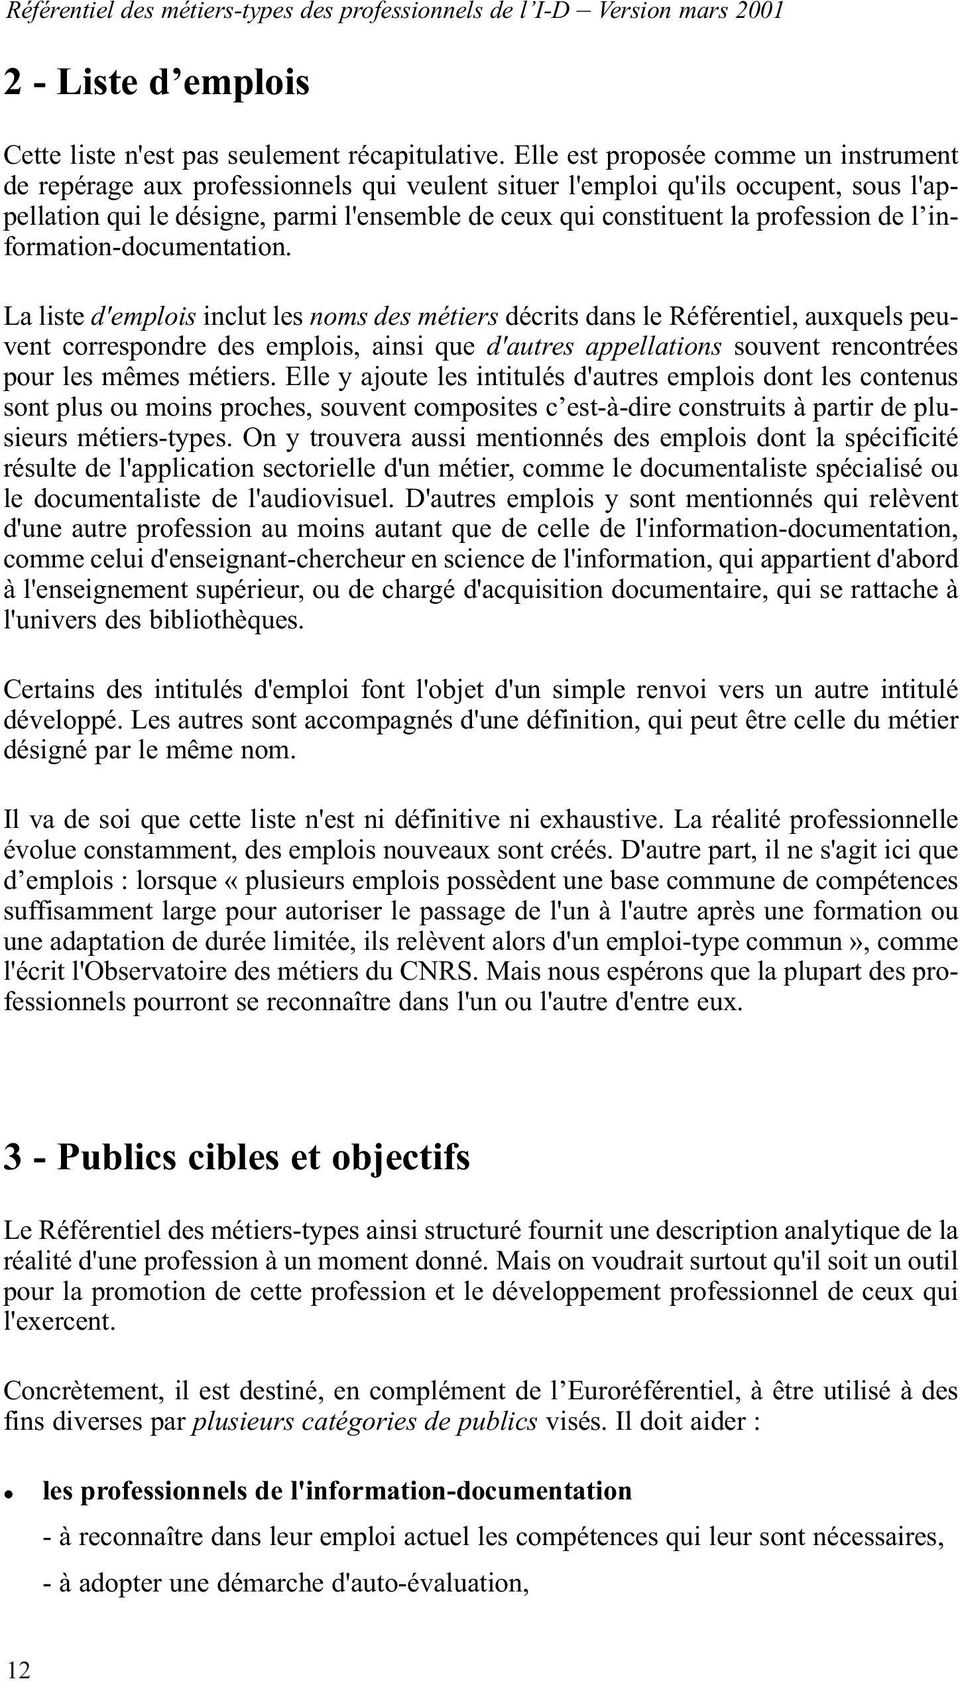 profession de l information-documentation.